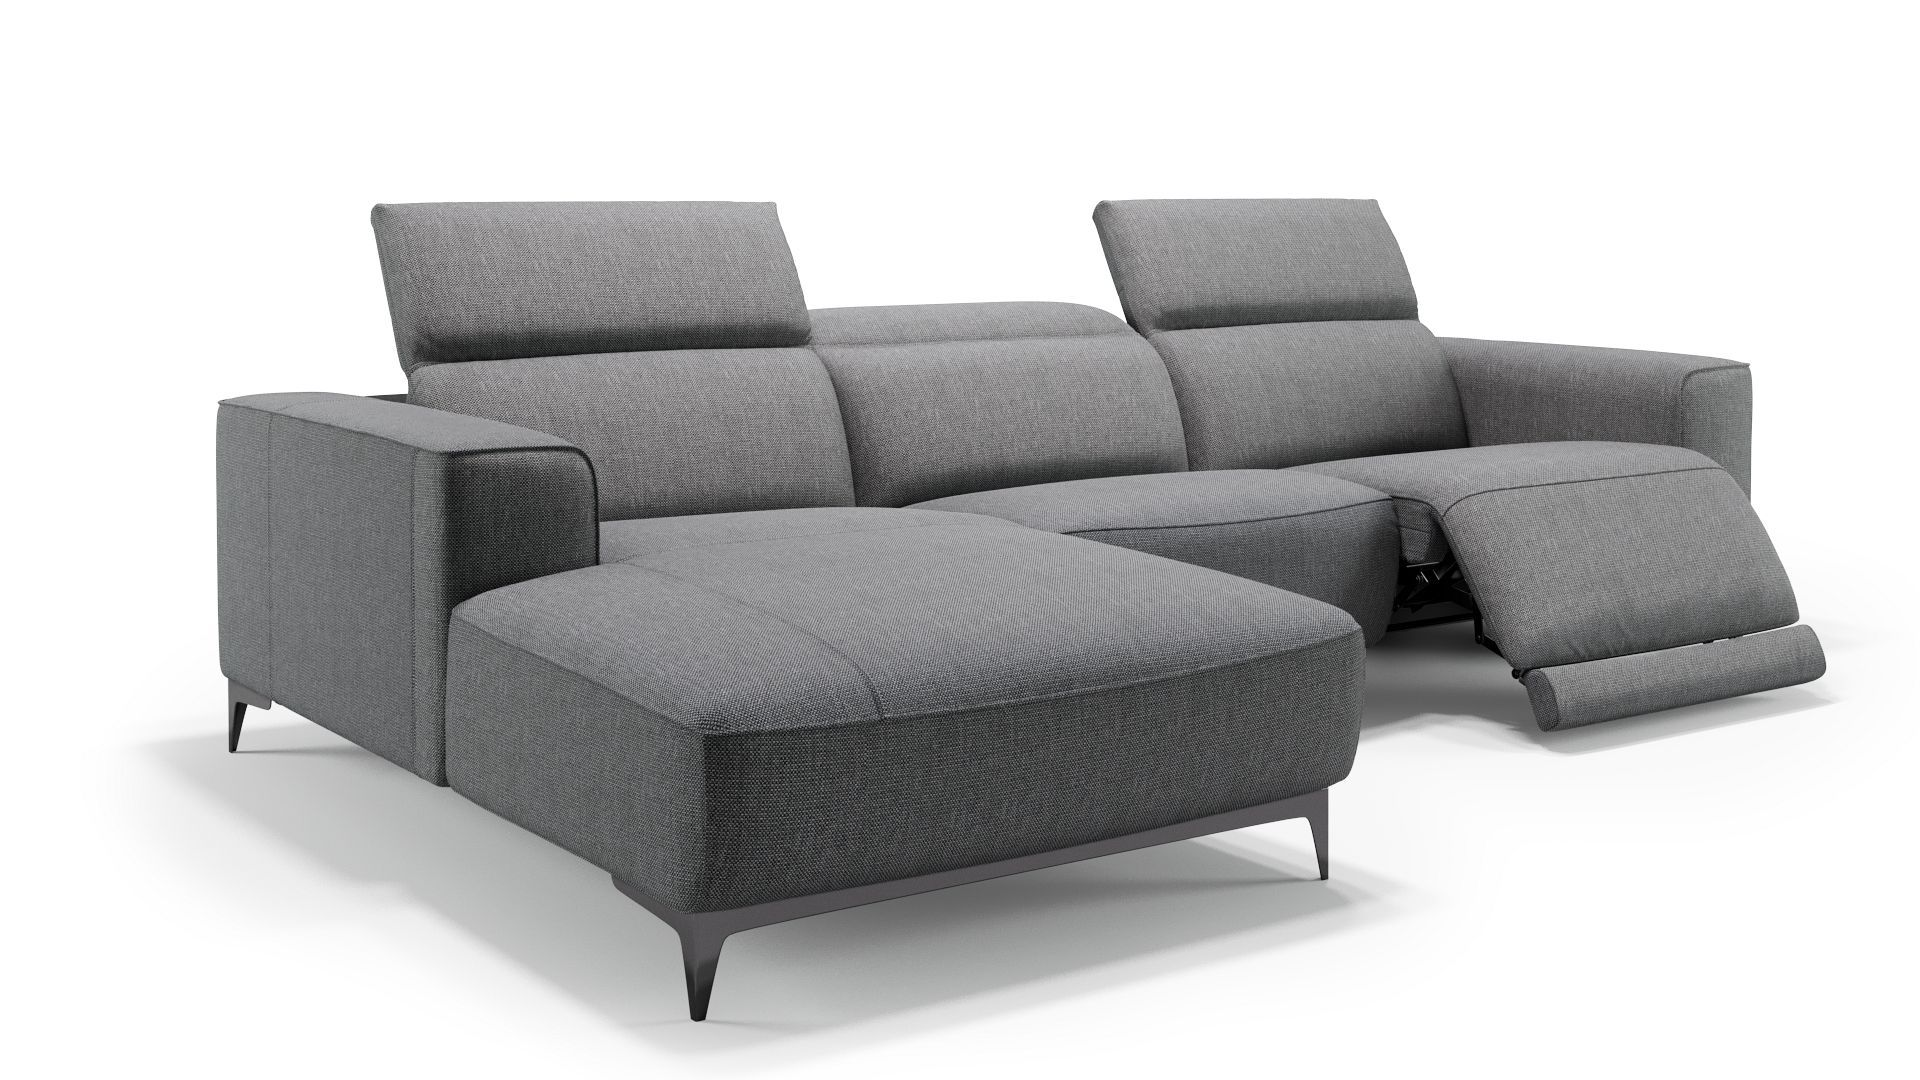 eastpack sofa madeline stuart collection ecksofa mit relaxfunktion elektrisch